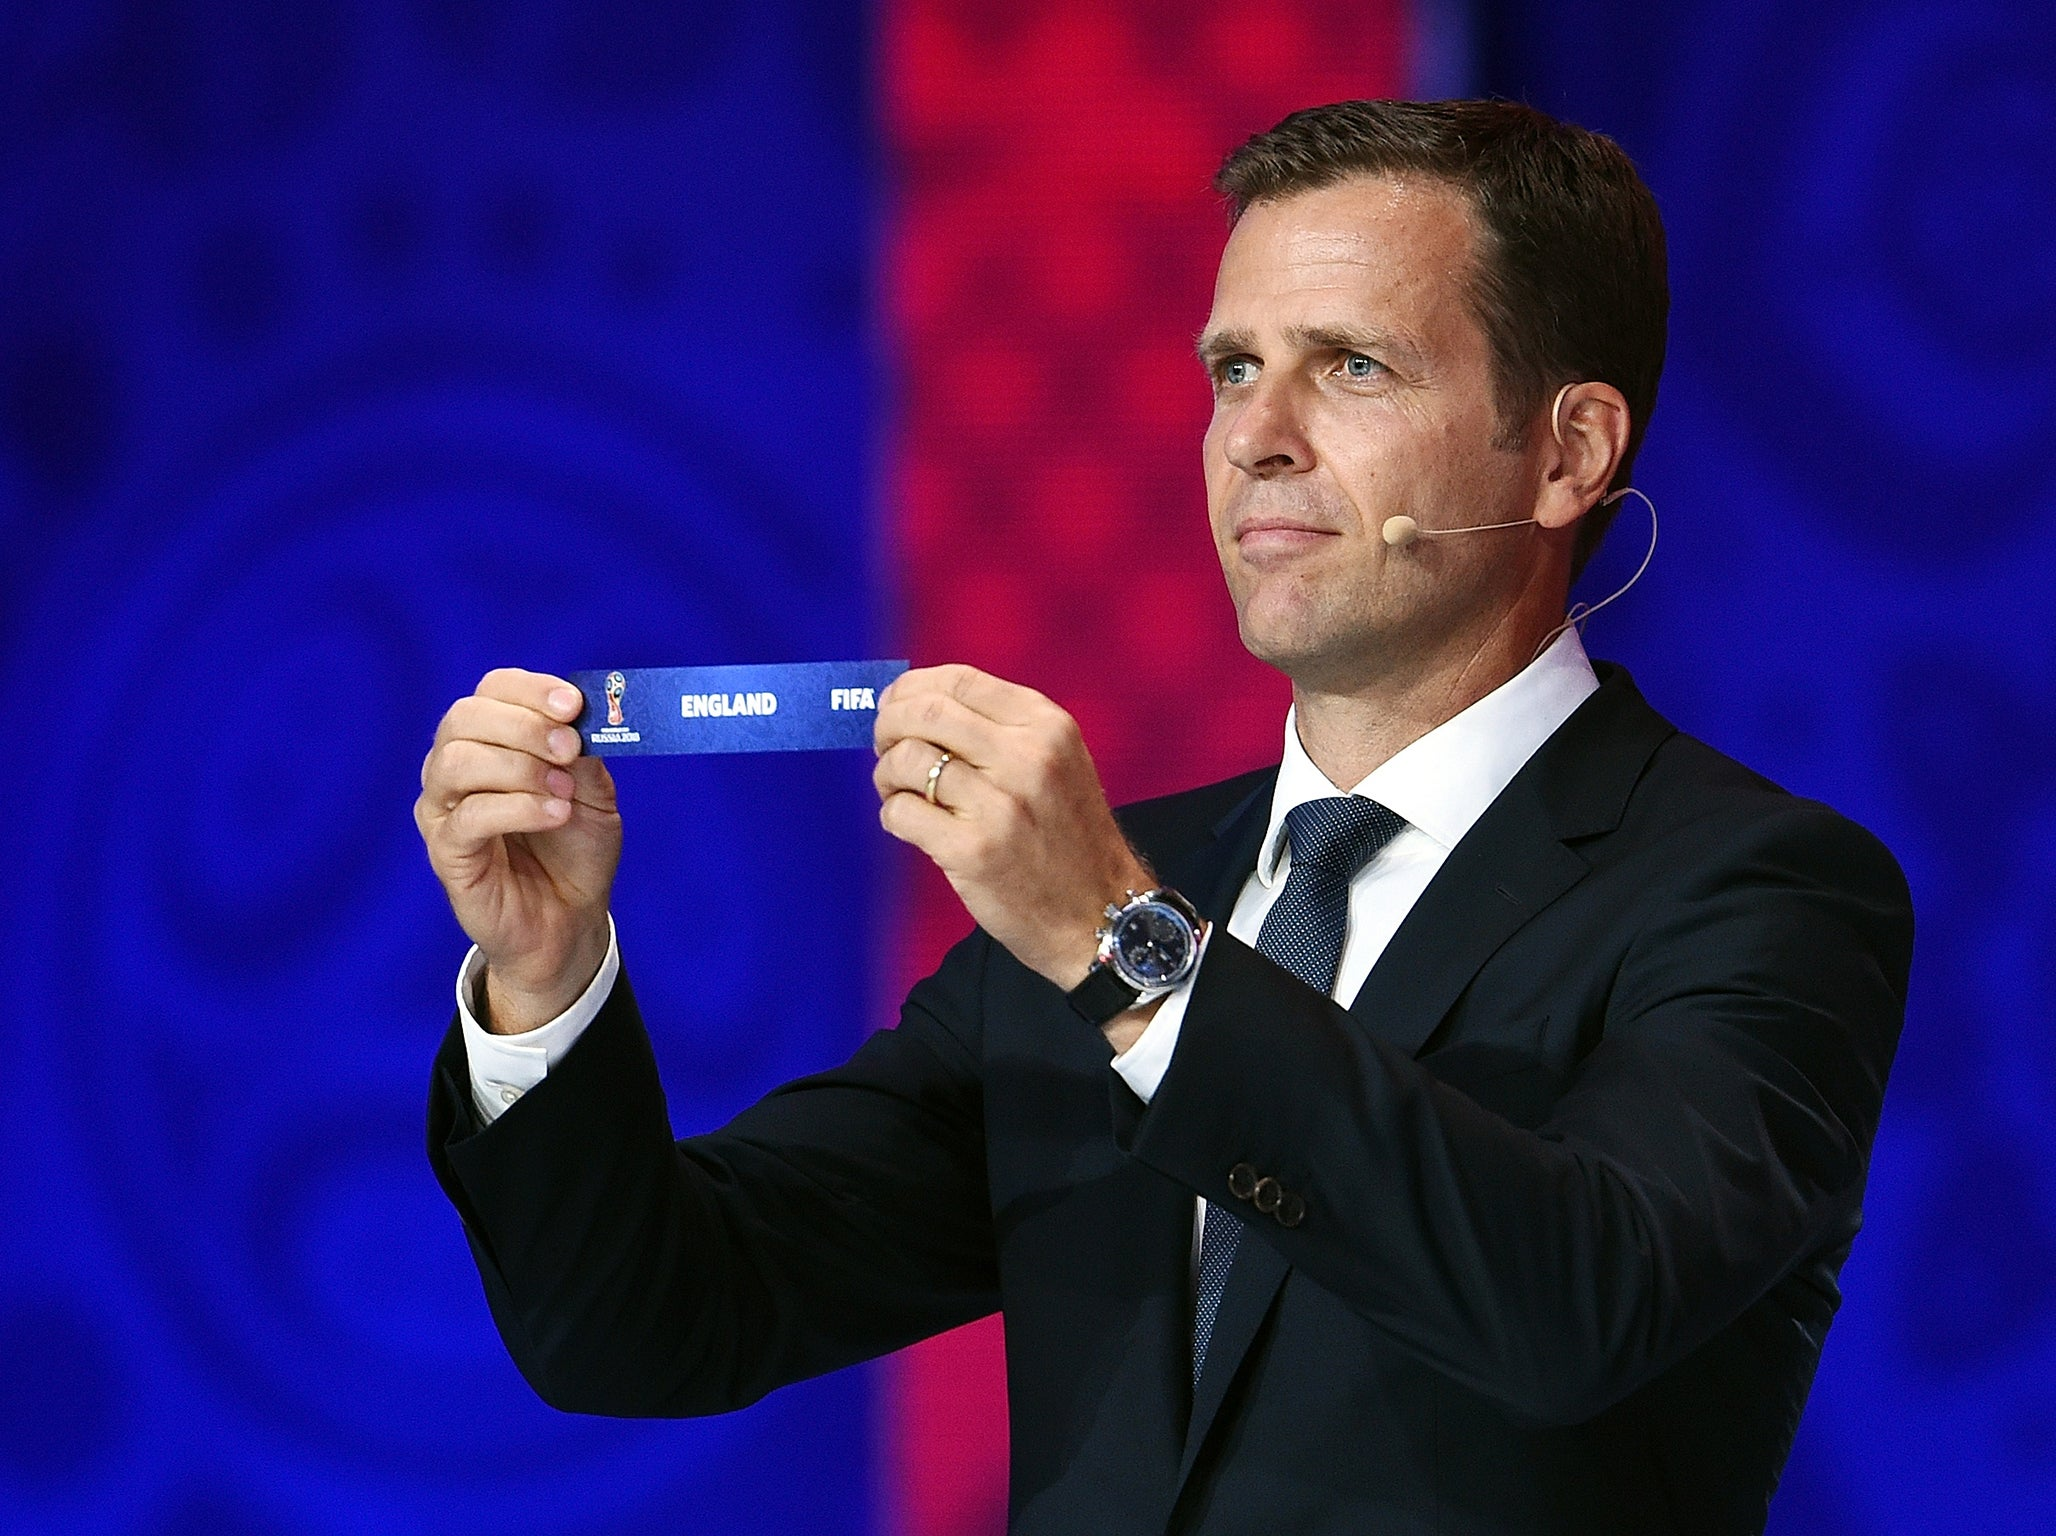 World Cup 2018 draw: England's best case scenario and the Group of Death they will want to avoid